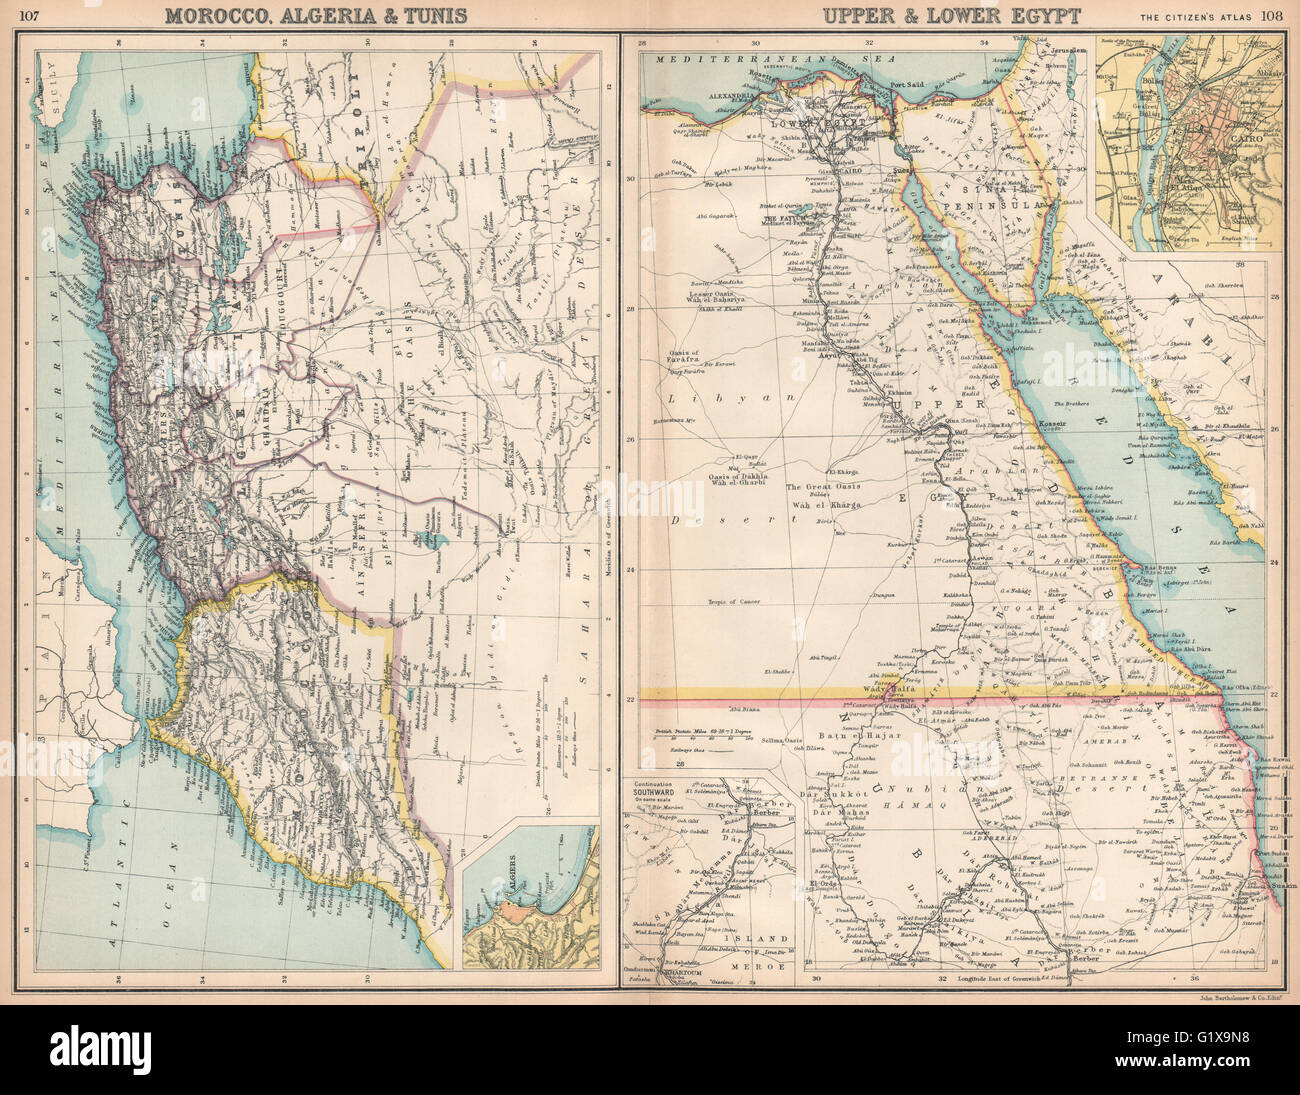 North africa morocco algeria tunis tunisia egypt cairo stock photo morocco algeria tunis tunisia egypt cairo bartholomew 1912 map gumiabroncs Choice Image